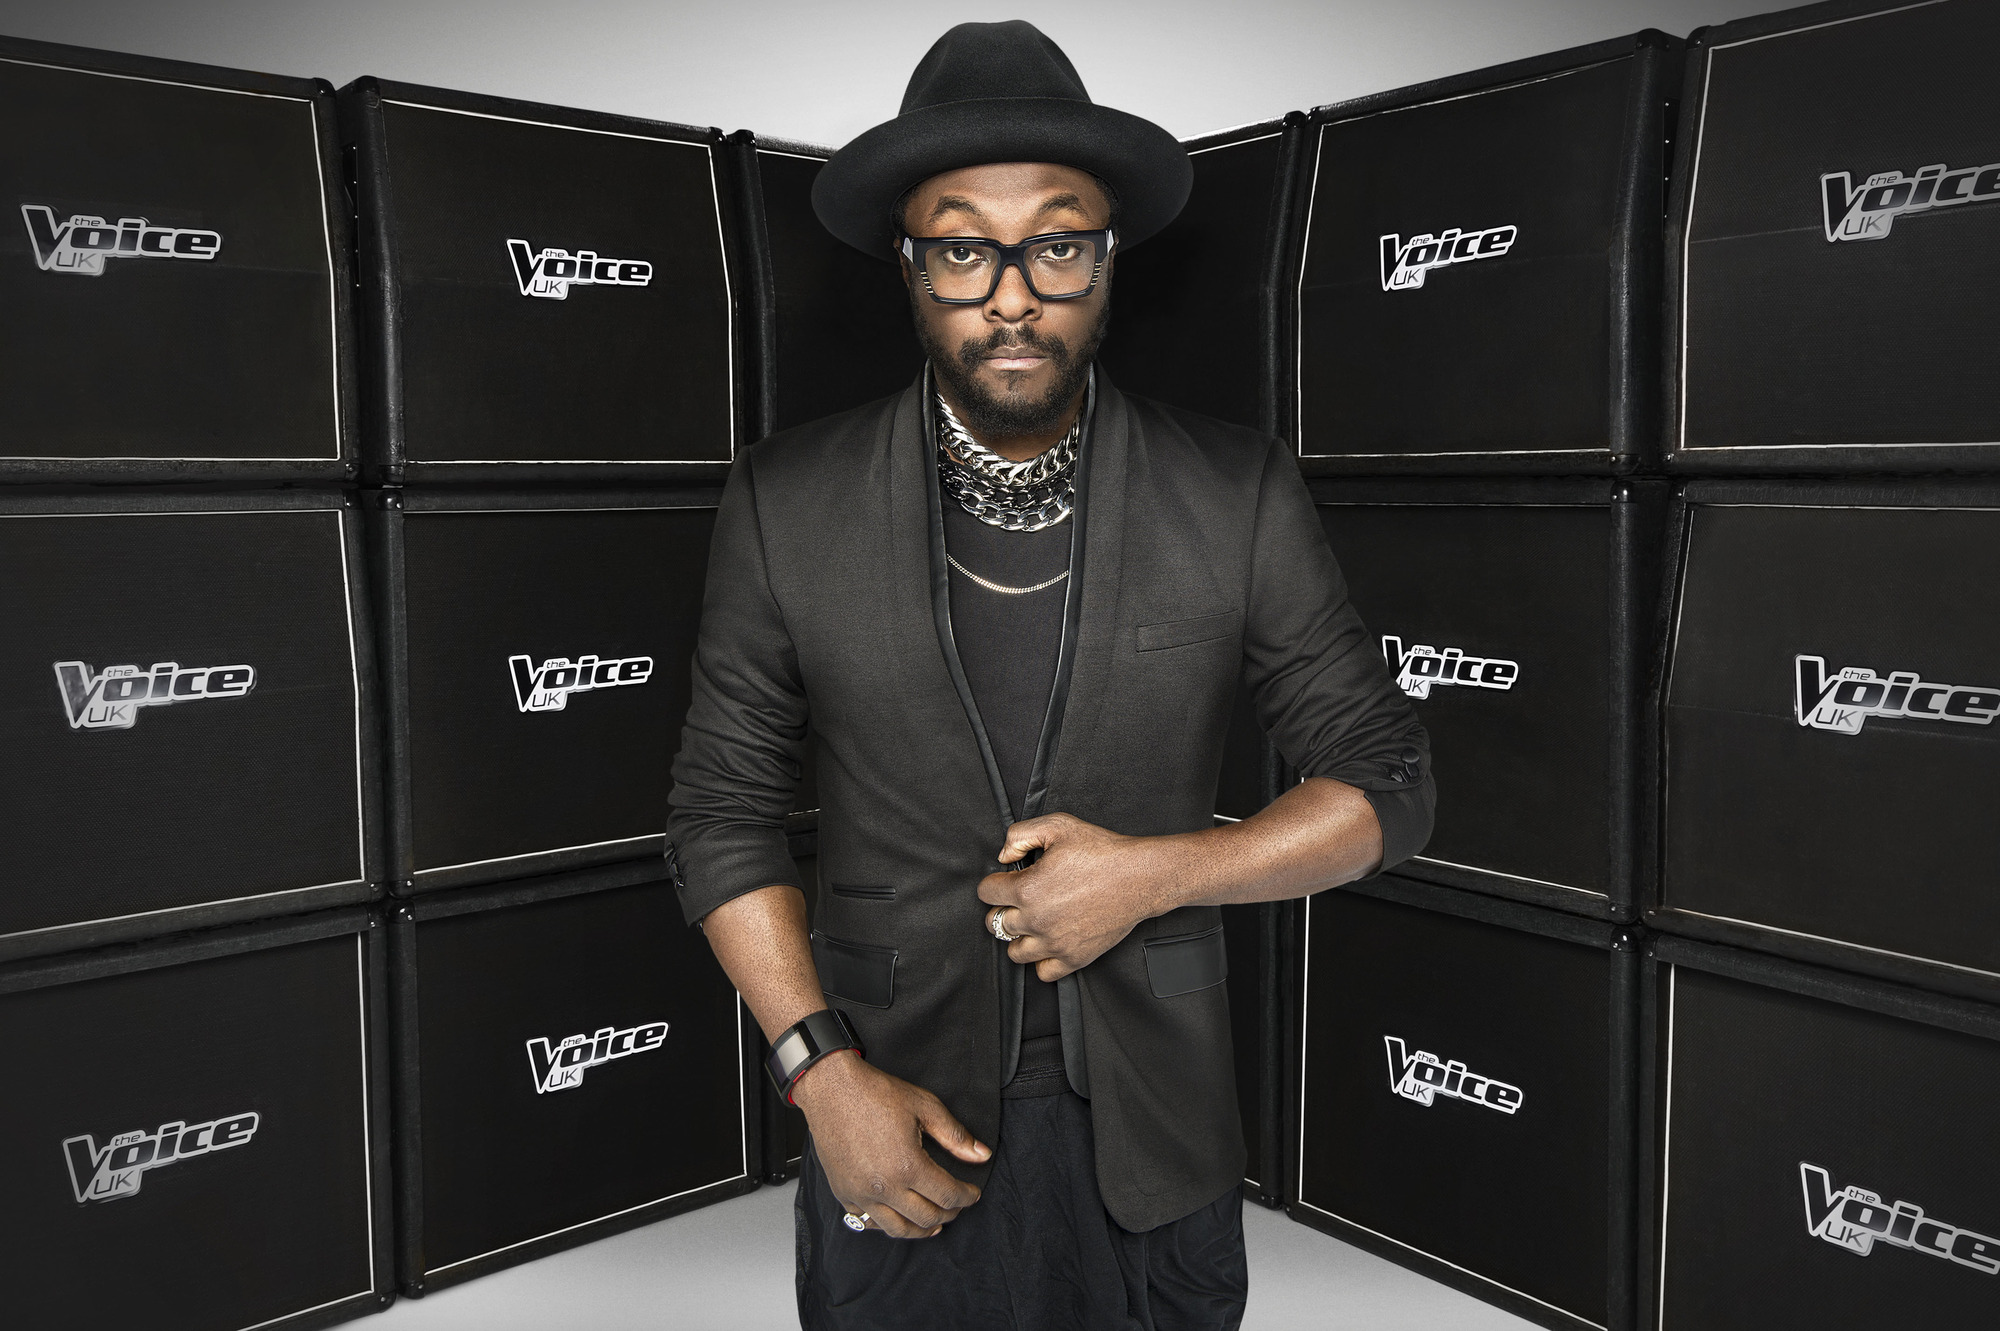 The Voice 2013 - will.i.am